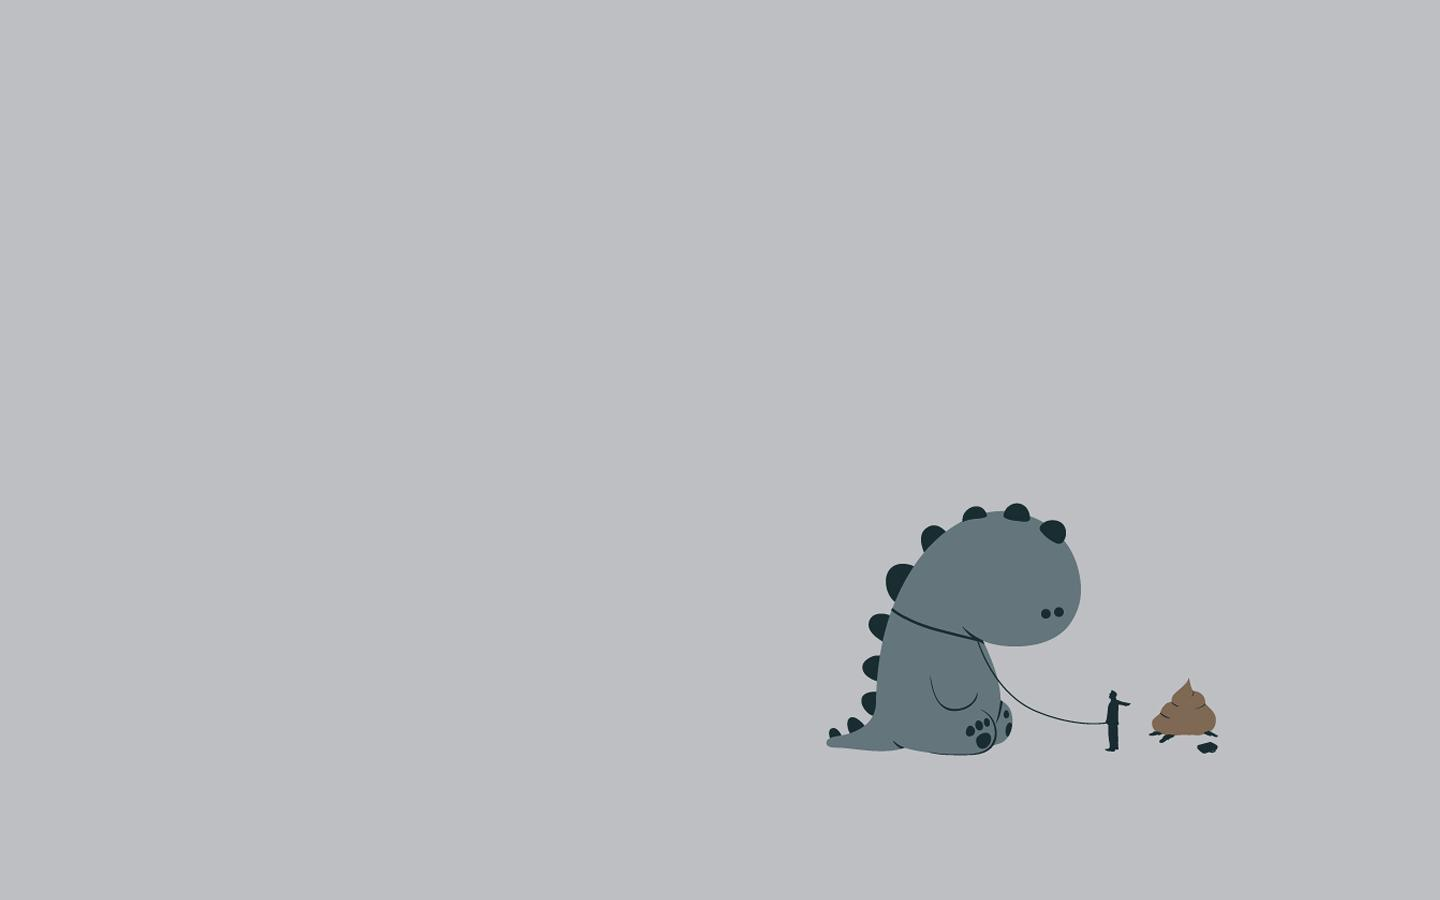 Funny simple background wallpaper 1440x900 186388 WallpaperUP 1440x900